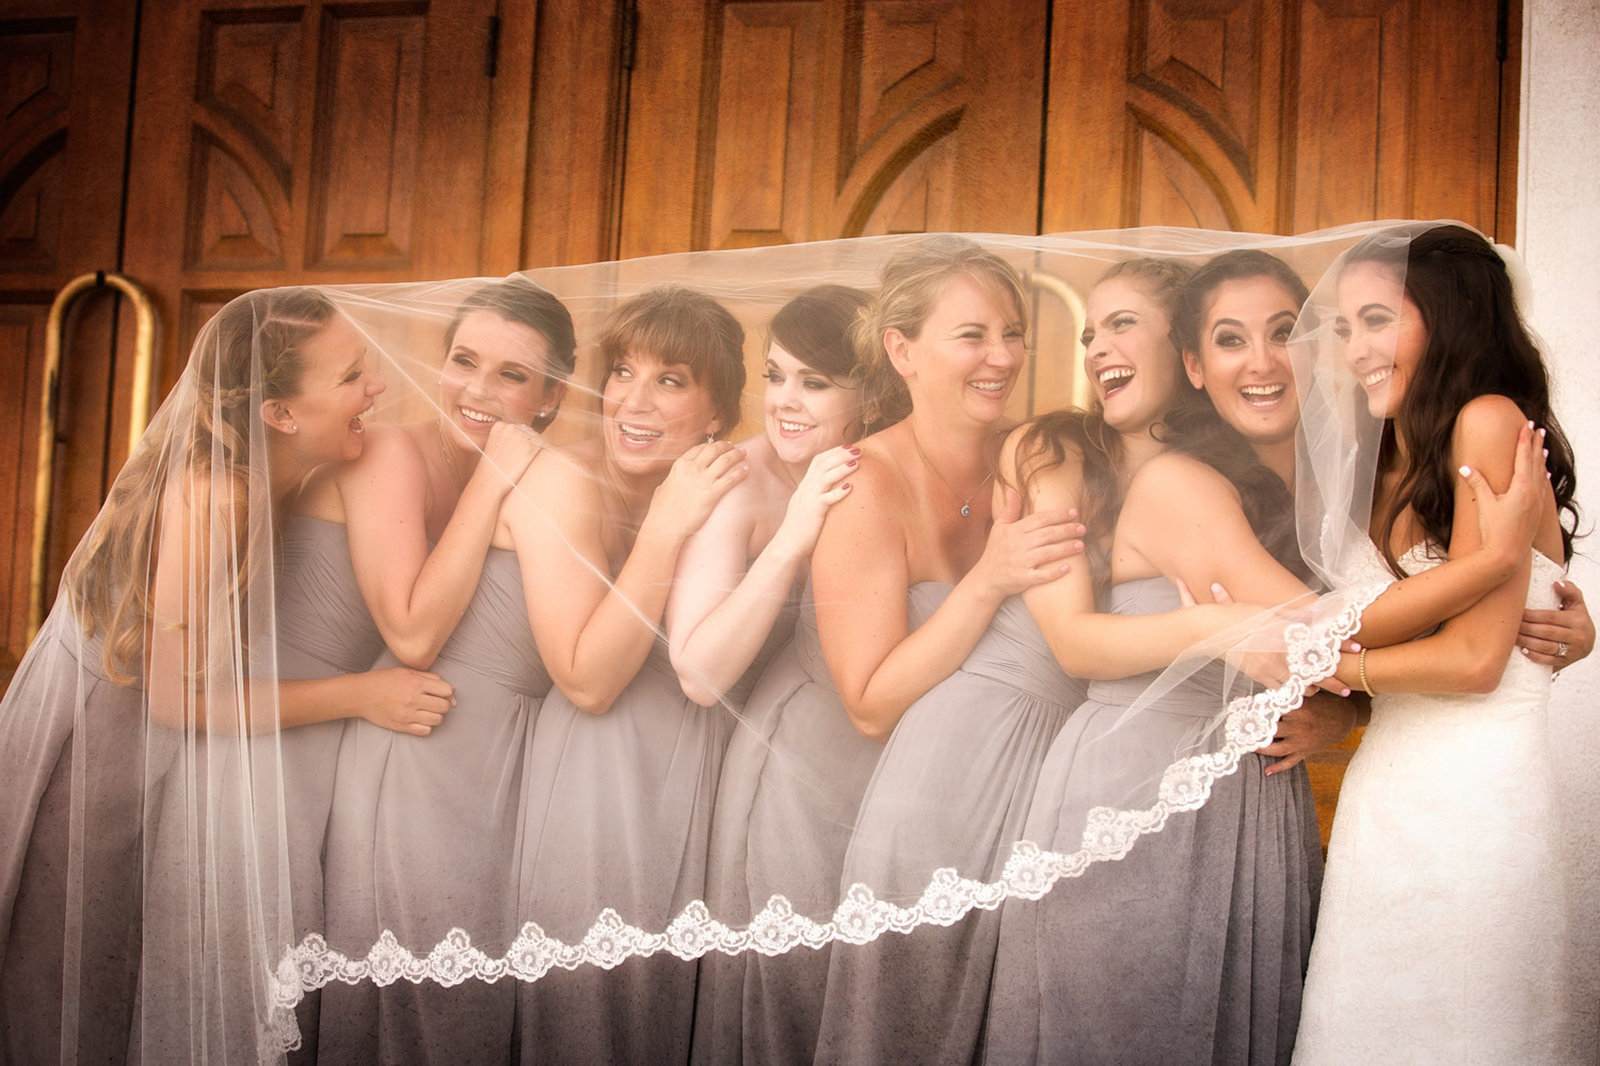 fun-bridesmaids-photo-ideas